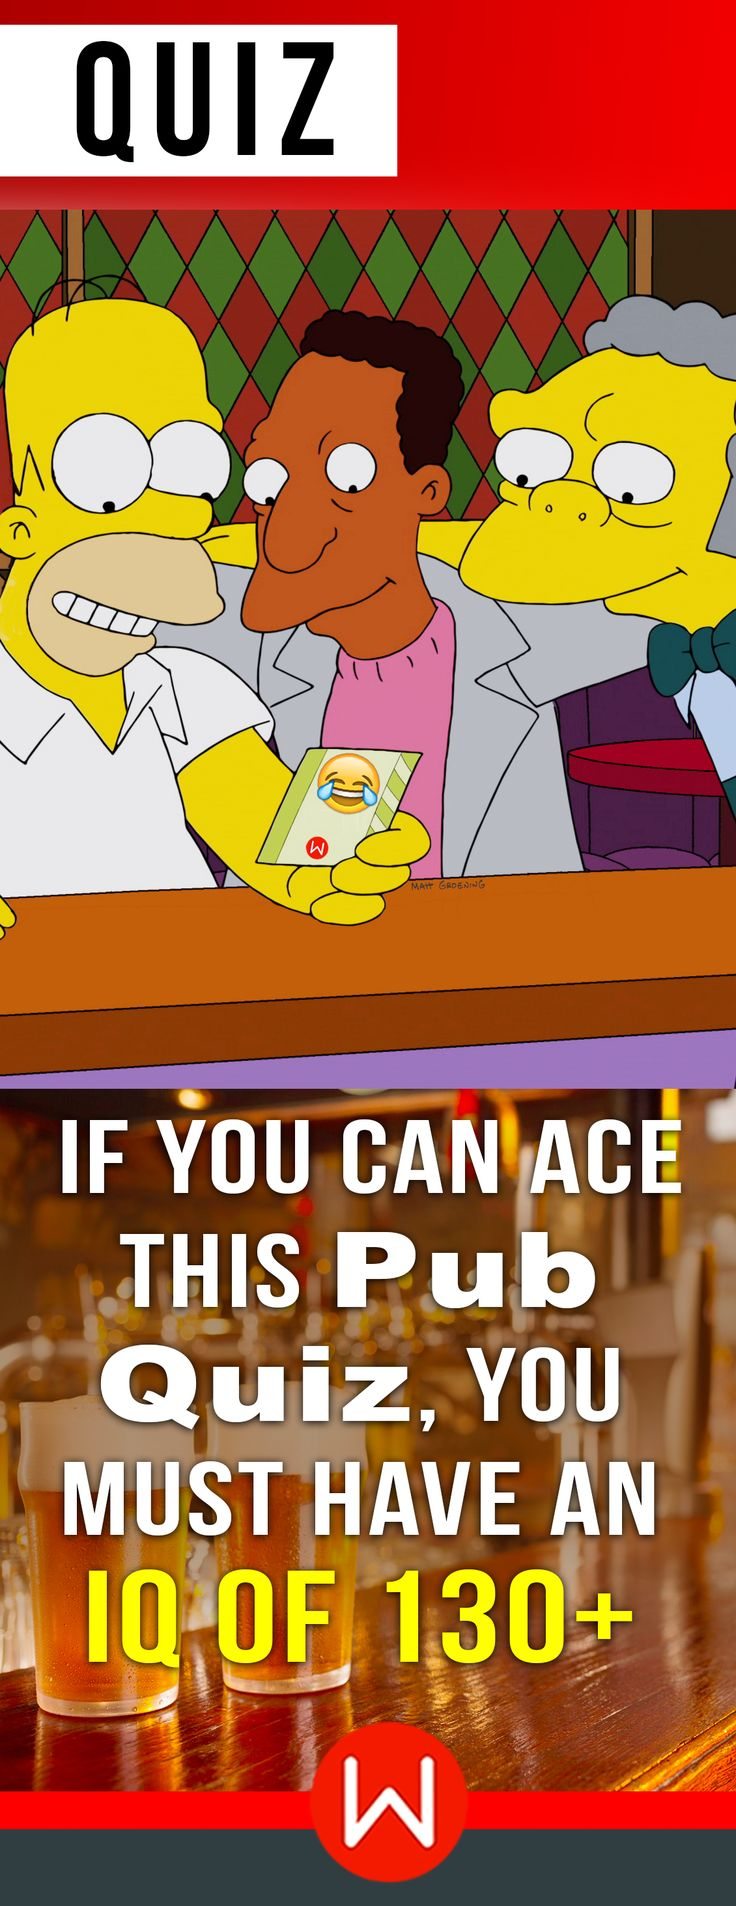 May the road rise to meet you ... Pub Trivia quiz. Now let's see if you are good at Pub Quizzes. Here's a fun Pub quiz you can take with or without beer. Let's see how's your Pub IQ. Fun IQ quiz. General knowledge trivia.